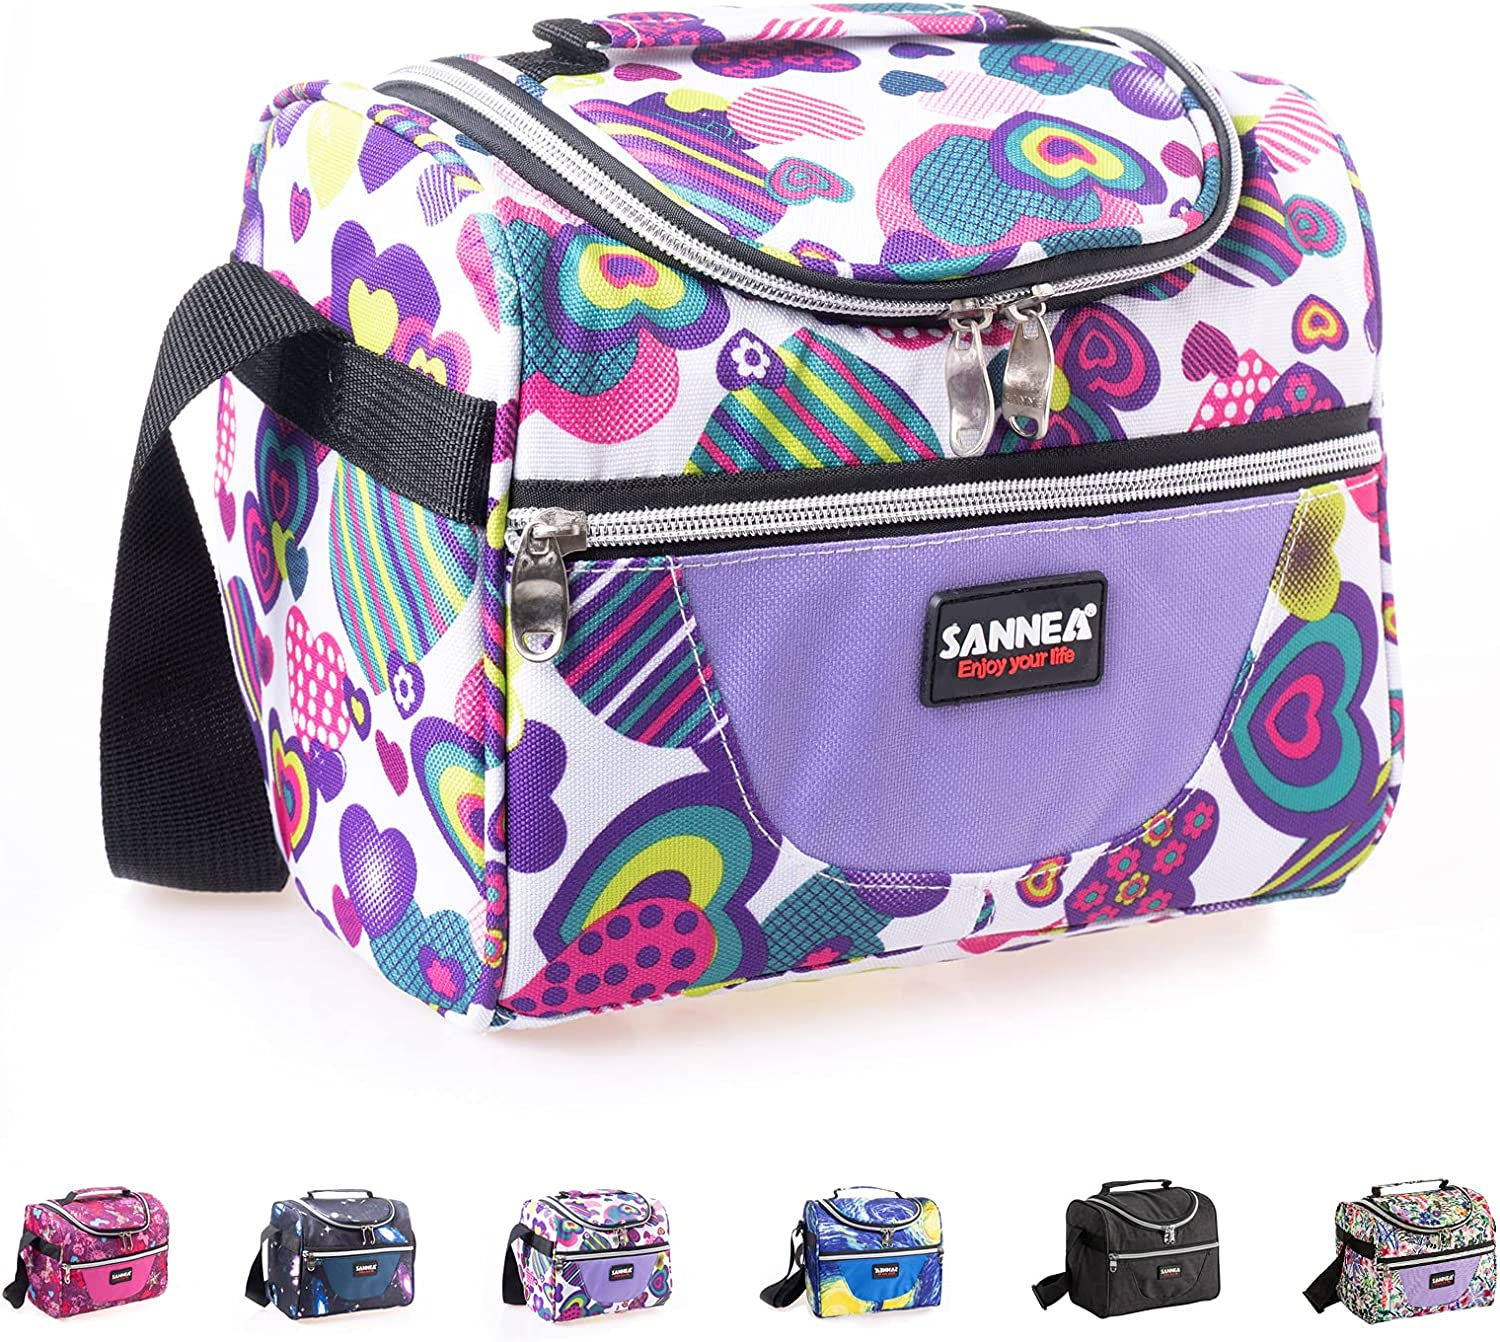 Pretty Jolly Insulated Lunch Box for Kids Adjustable Strap Lunch Bag for Boys Girls Reusable Lunch Organizer Bento Bags Cooler Tote for Office Work School Picnic Beach/Children Student (Loving Heart)